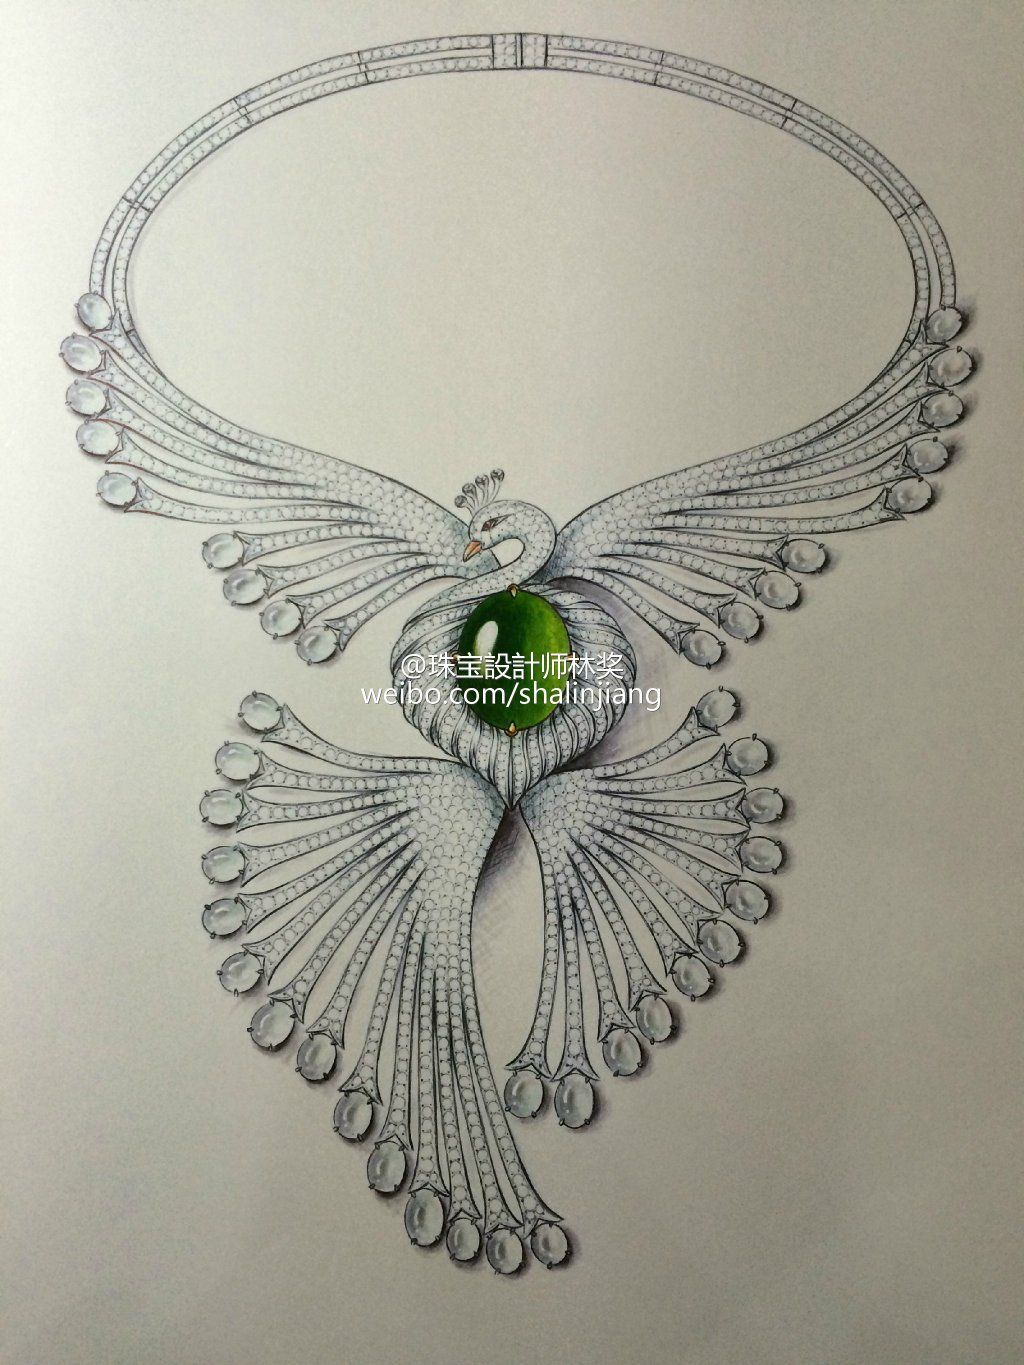 Pin by riya on sketches in 2019 | Necklace drawing ...